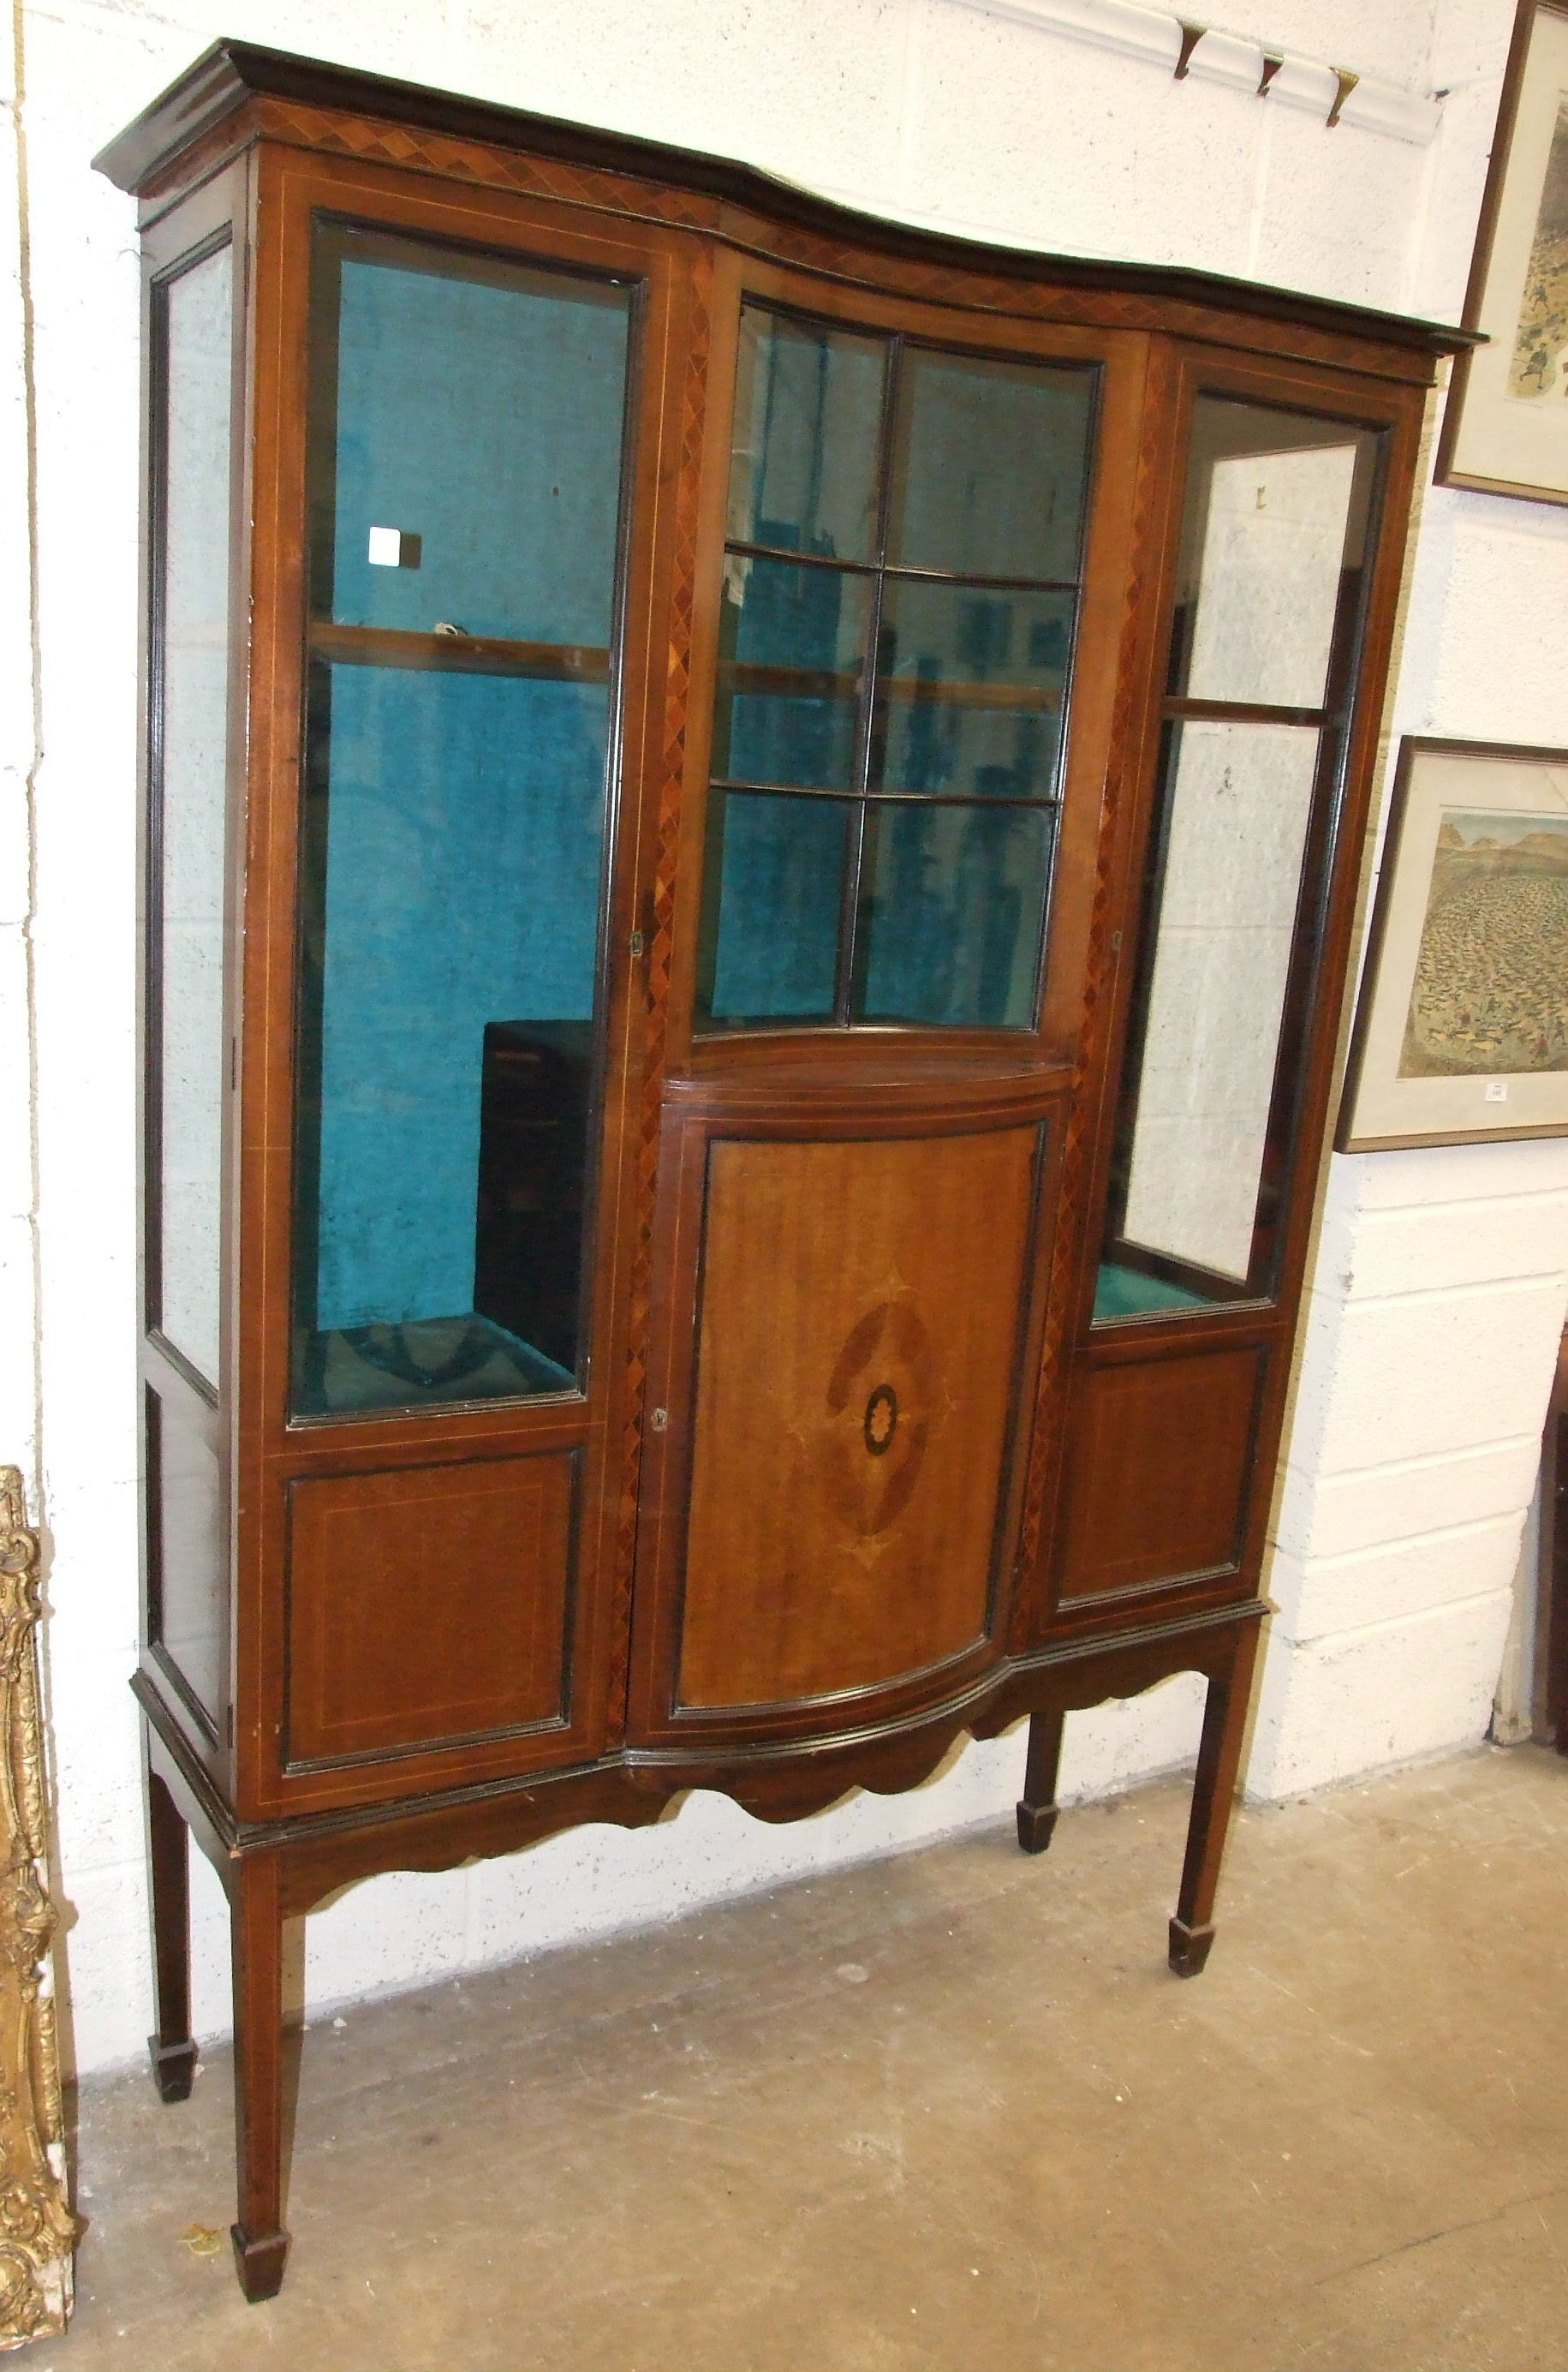 Lot 11 - An Edwardian inlaid mahogany glazed display cabinet on square legs and spade feet, 118cm wide, 173cm